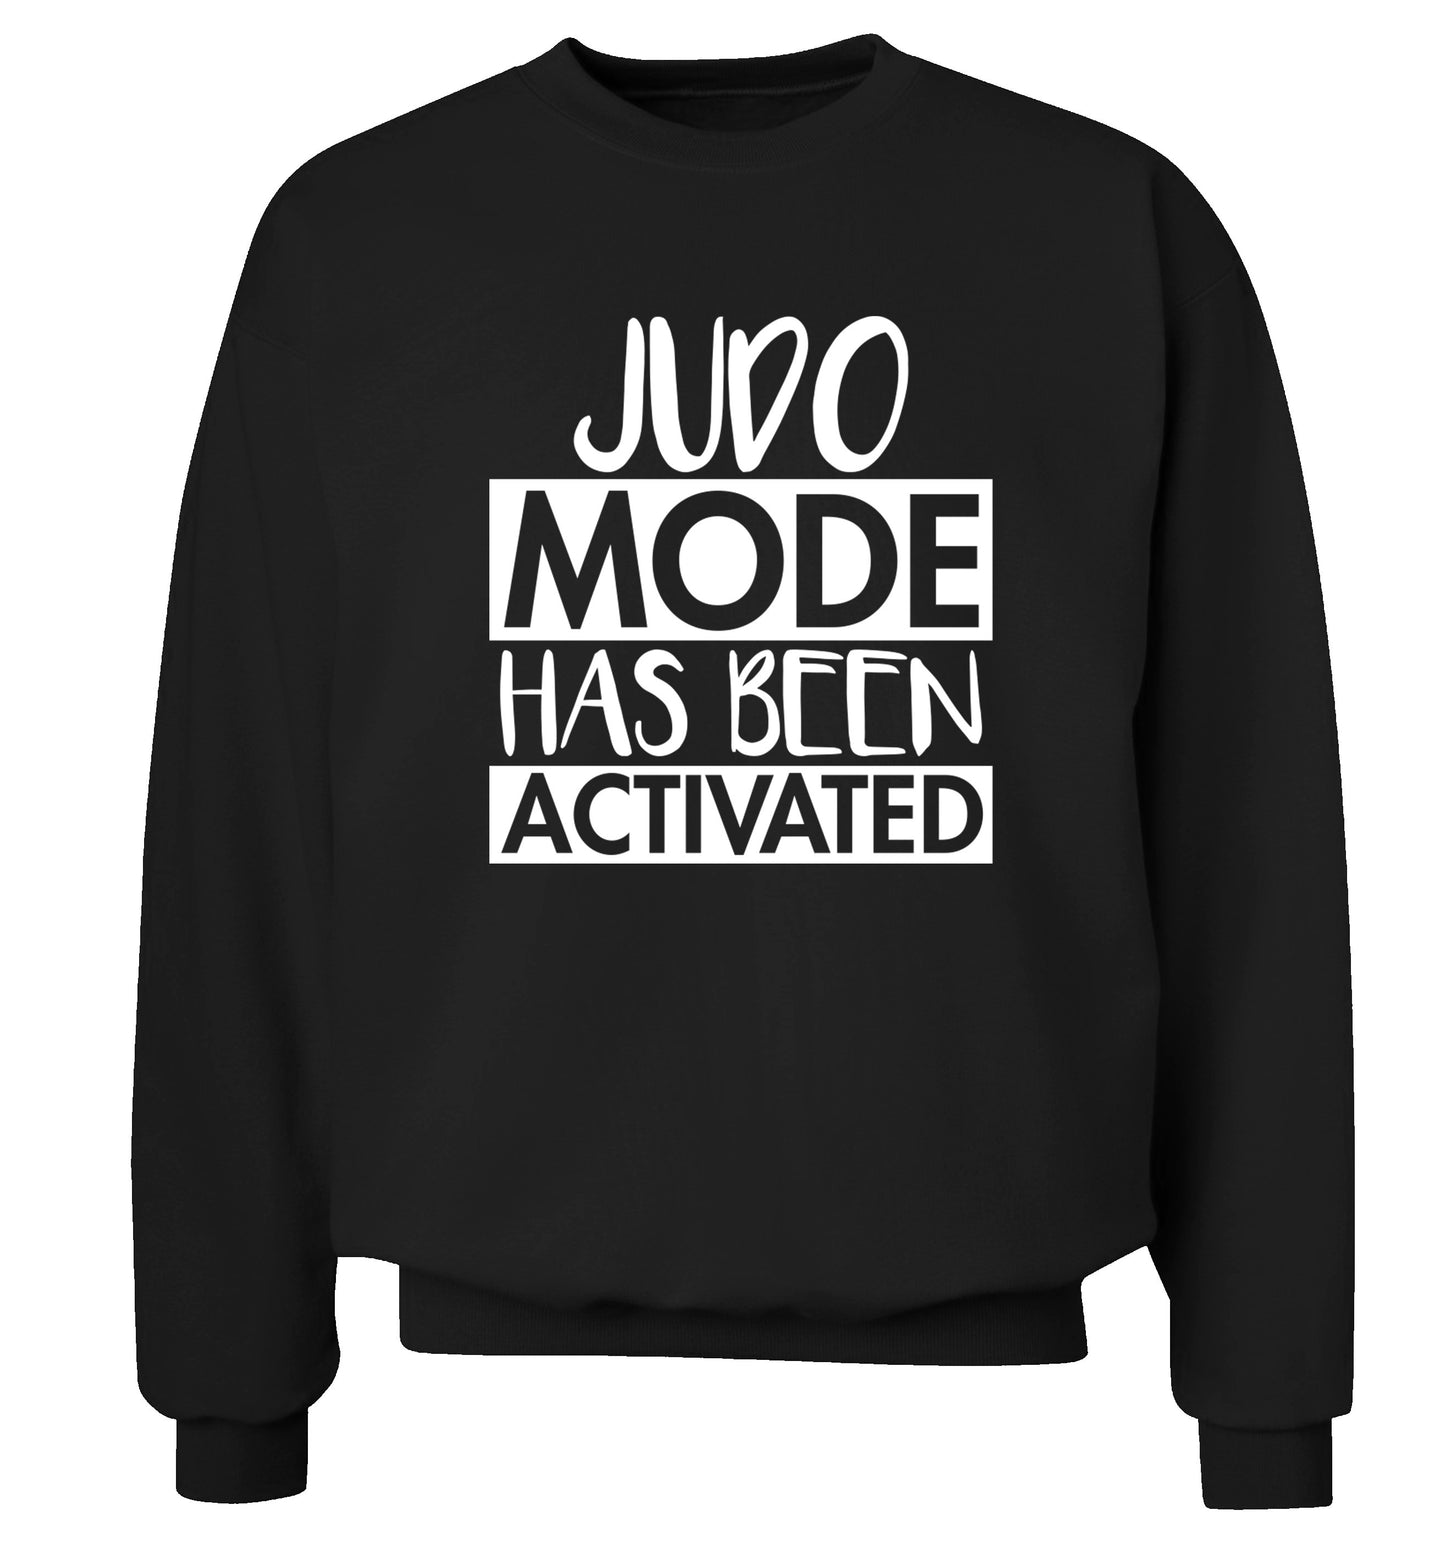 Judo mode activated Adult's unisex black Sweater 2XL